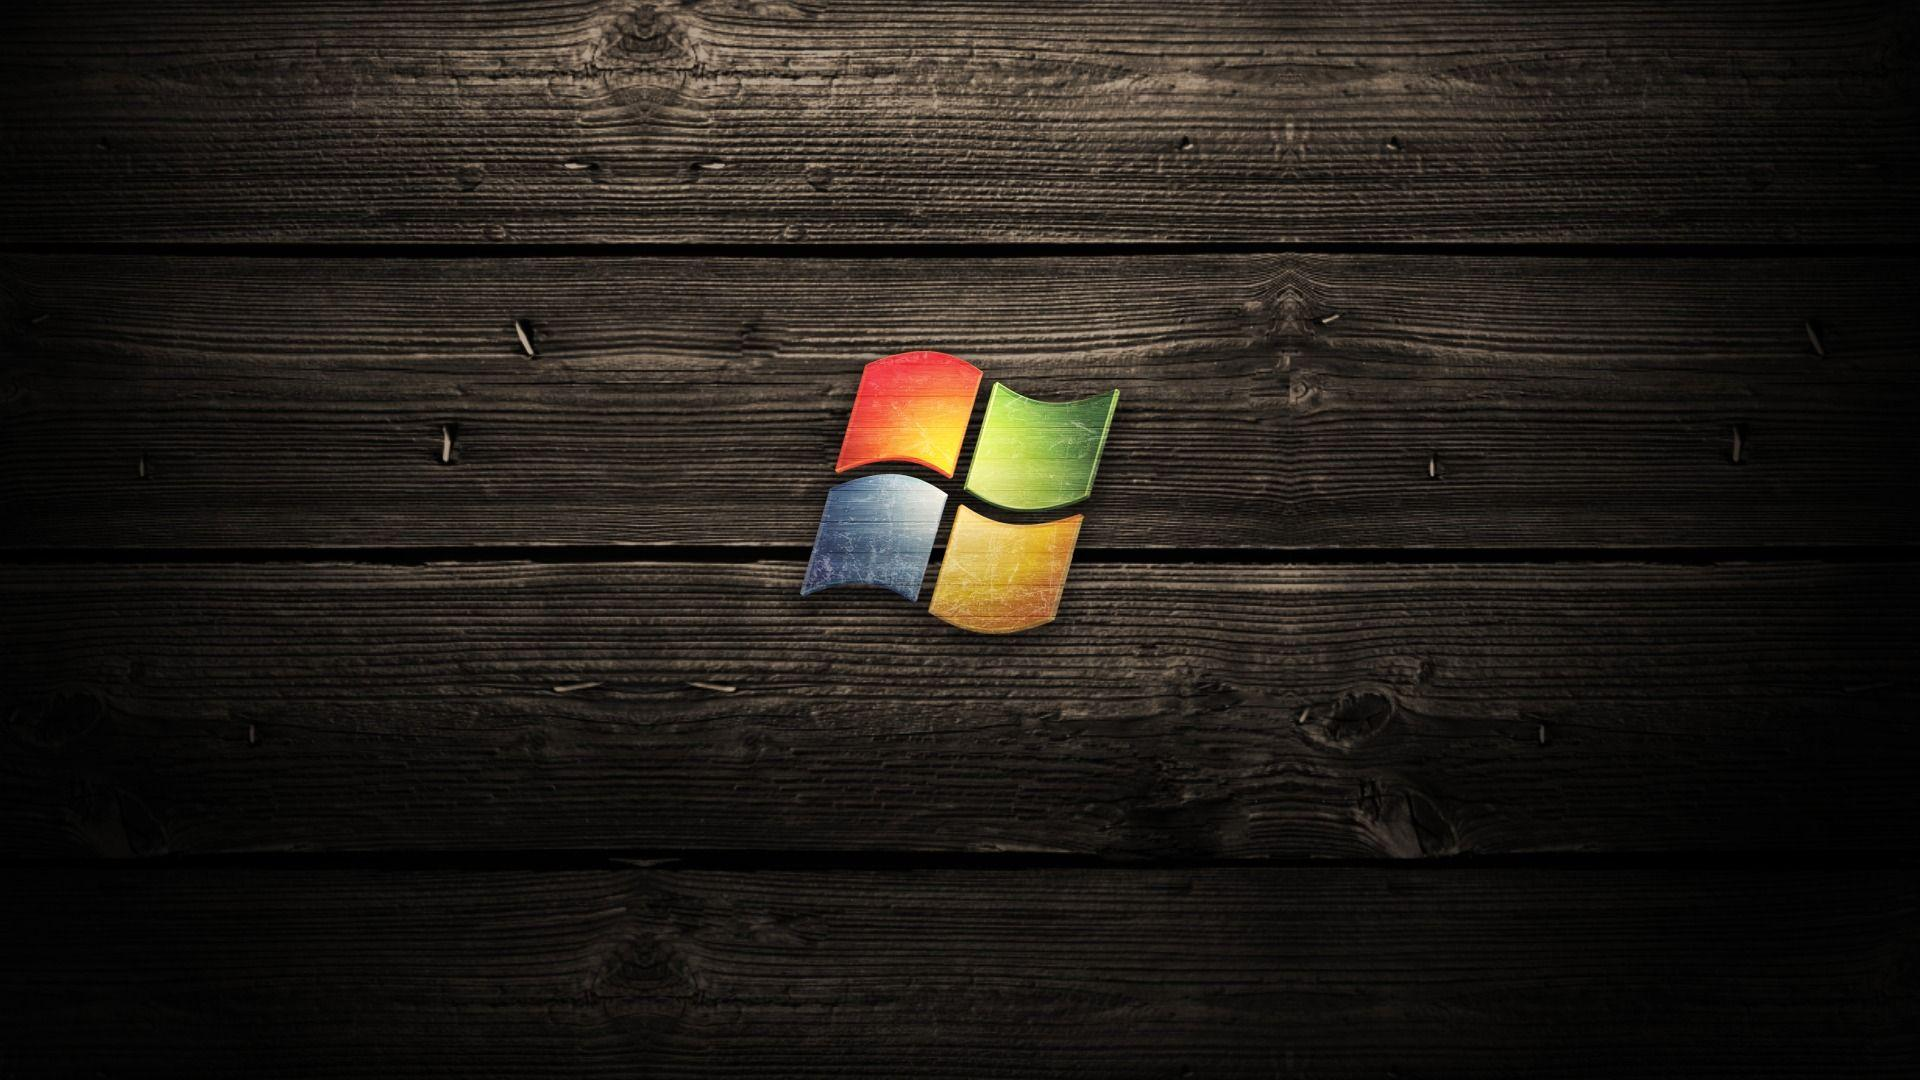 windows wallpaper 1920x1080 ws - photo #6